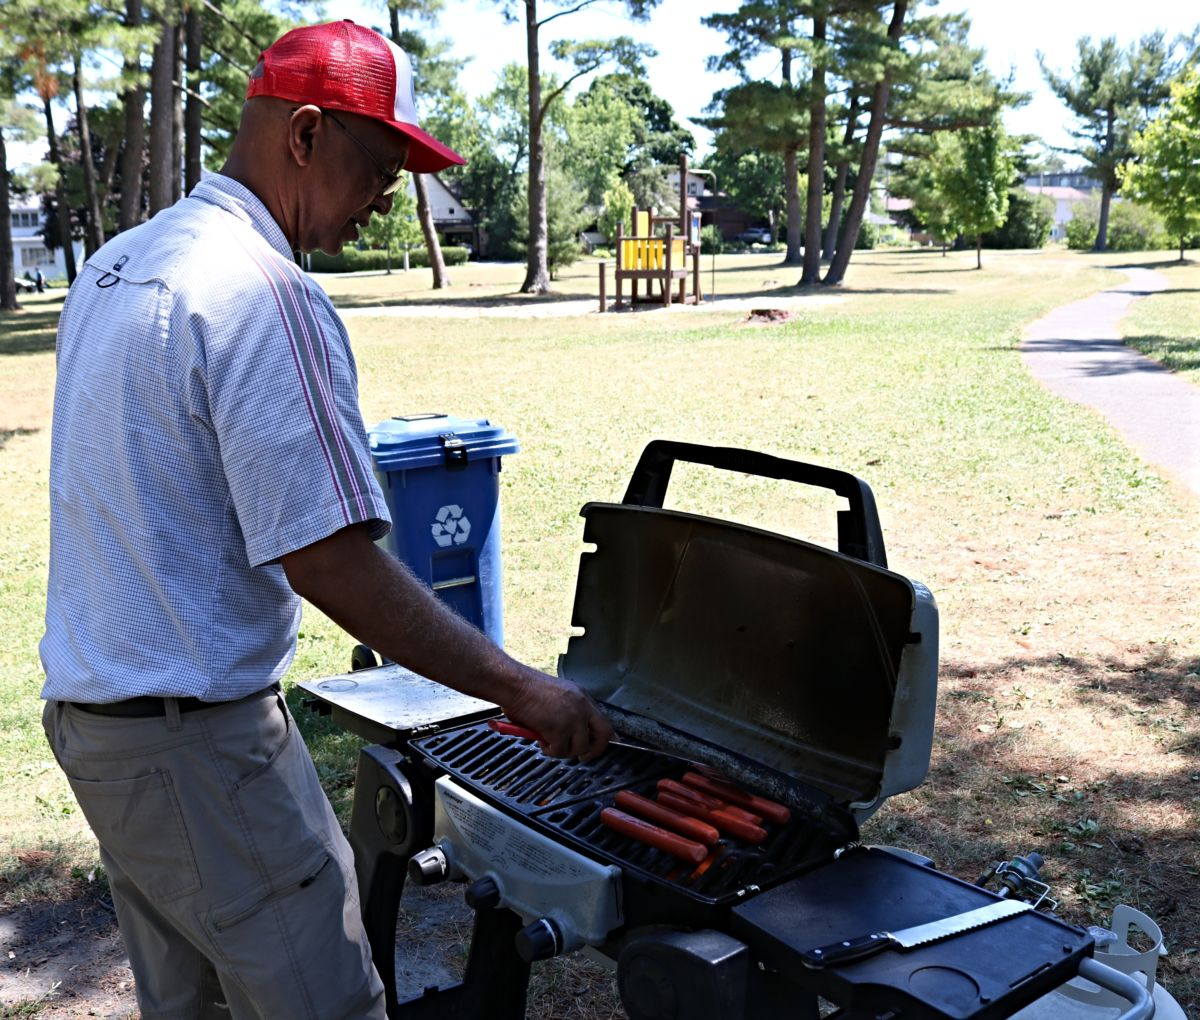 Man cooks hot dogs